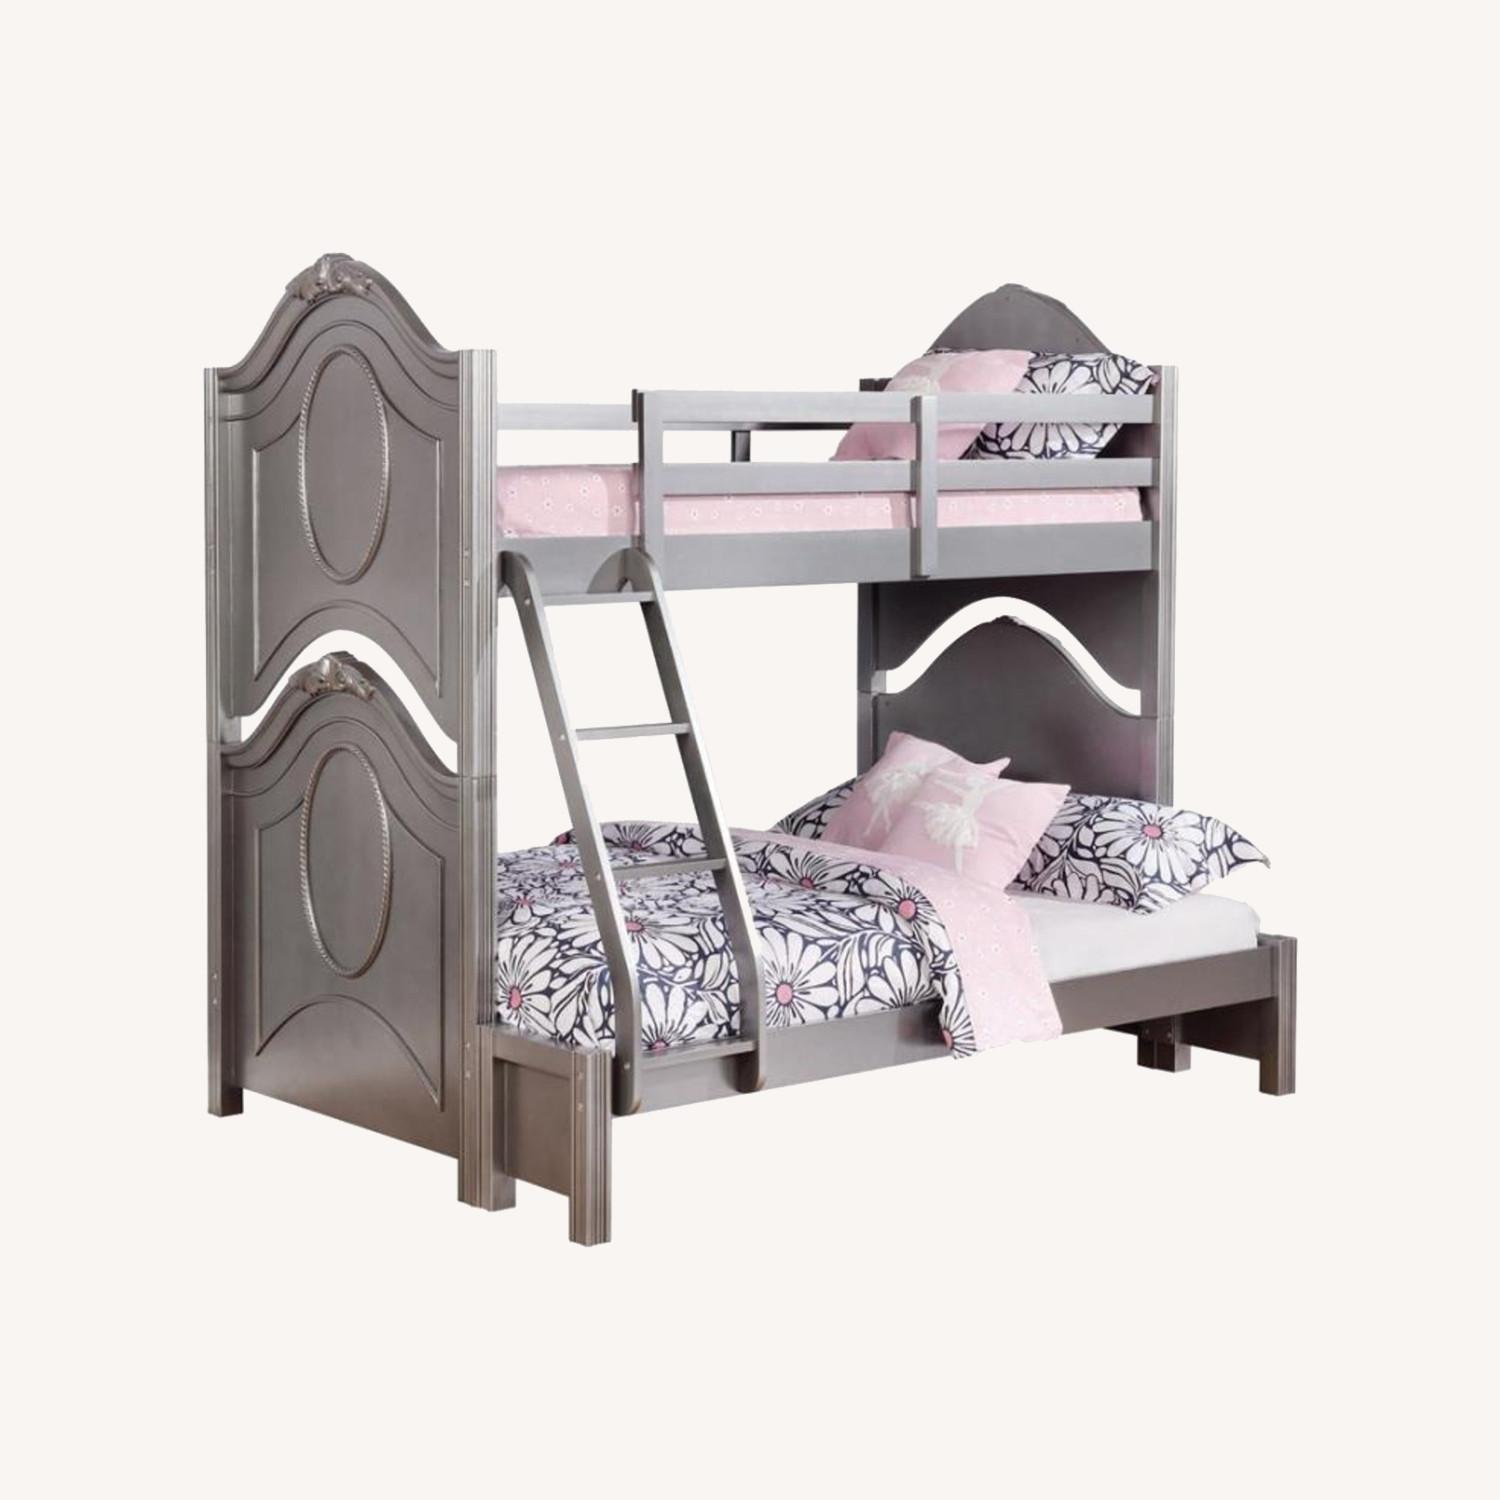 Twin Over Full Bunk Bed In Metallic Pewter Finish - image-3